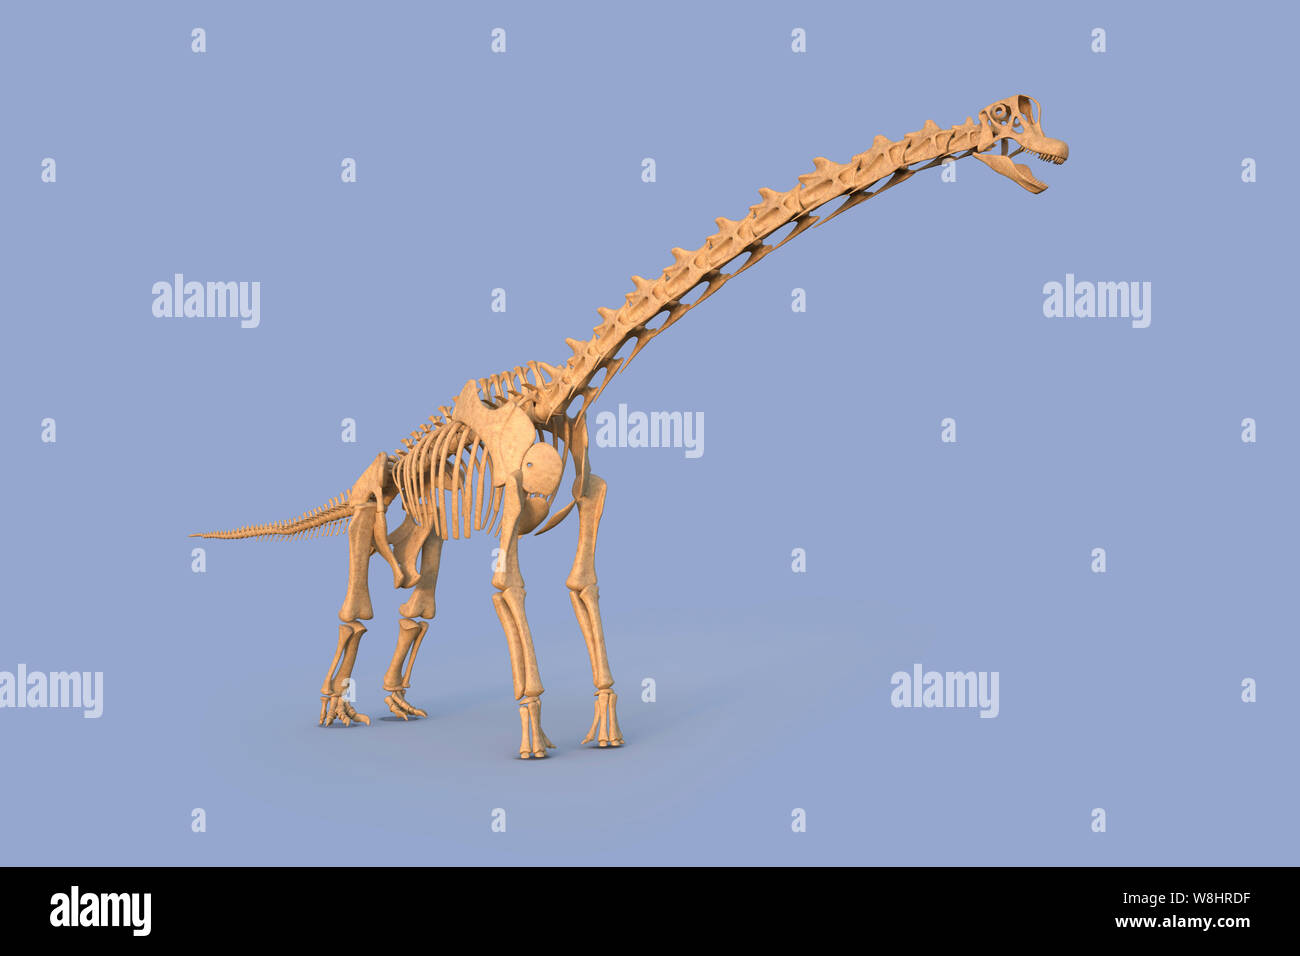 Brachiosaurus dinosaur skeletal structure, illustration. Brachiosaurs lived 154-153 million years ago during the late Jurassic period. Stock Photo